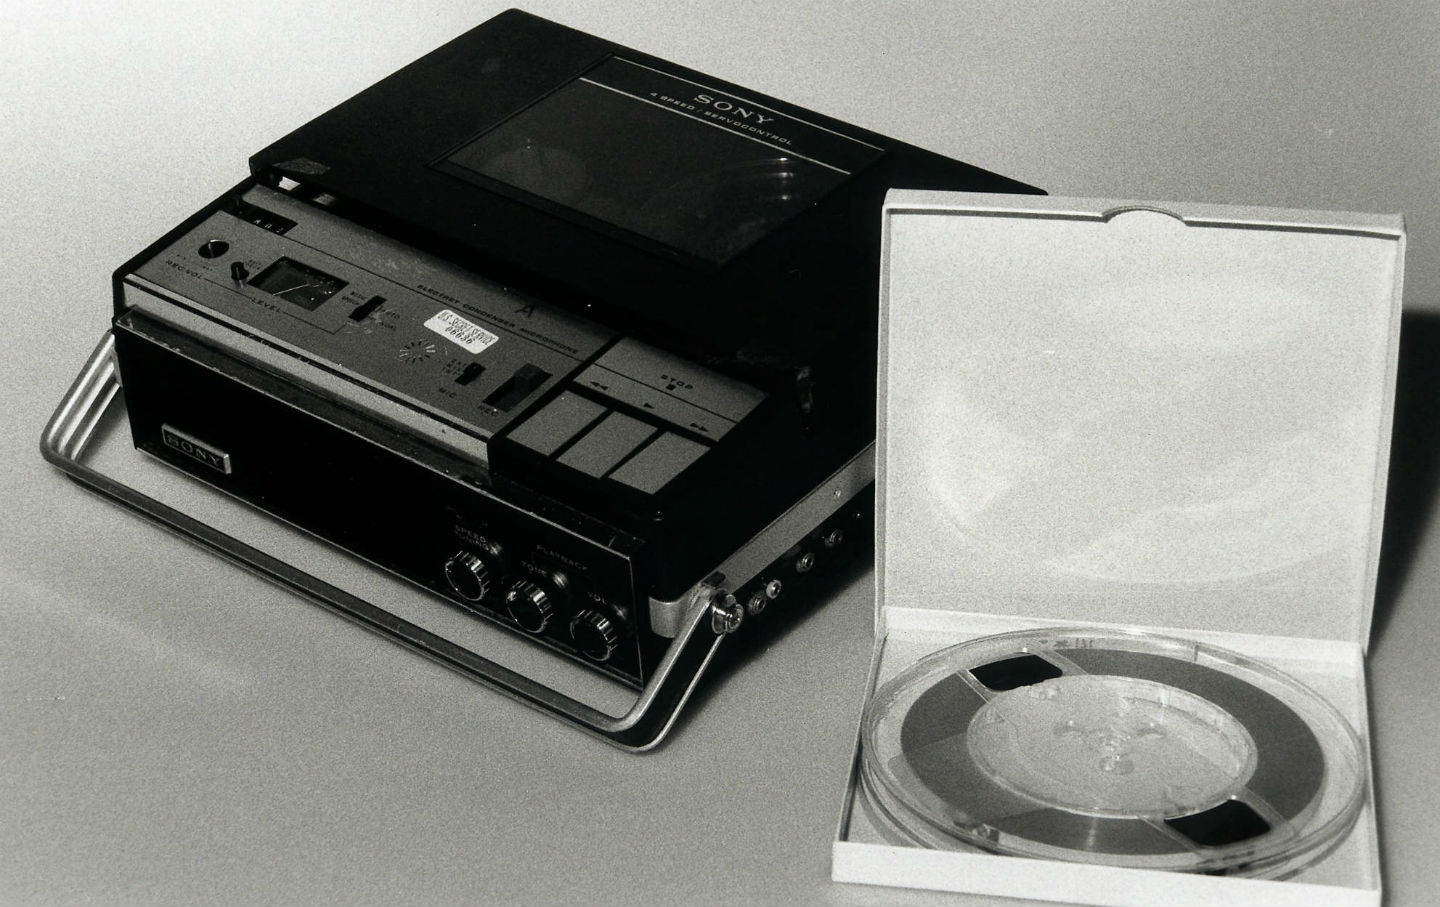 The-original-Nixon-White-House-tape-and-original-tape-recorder